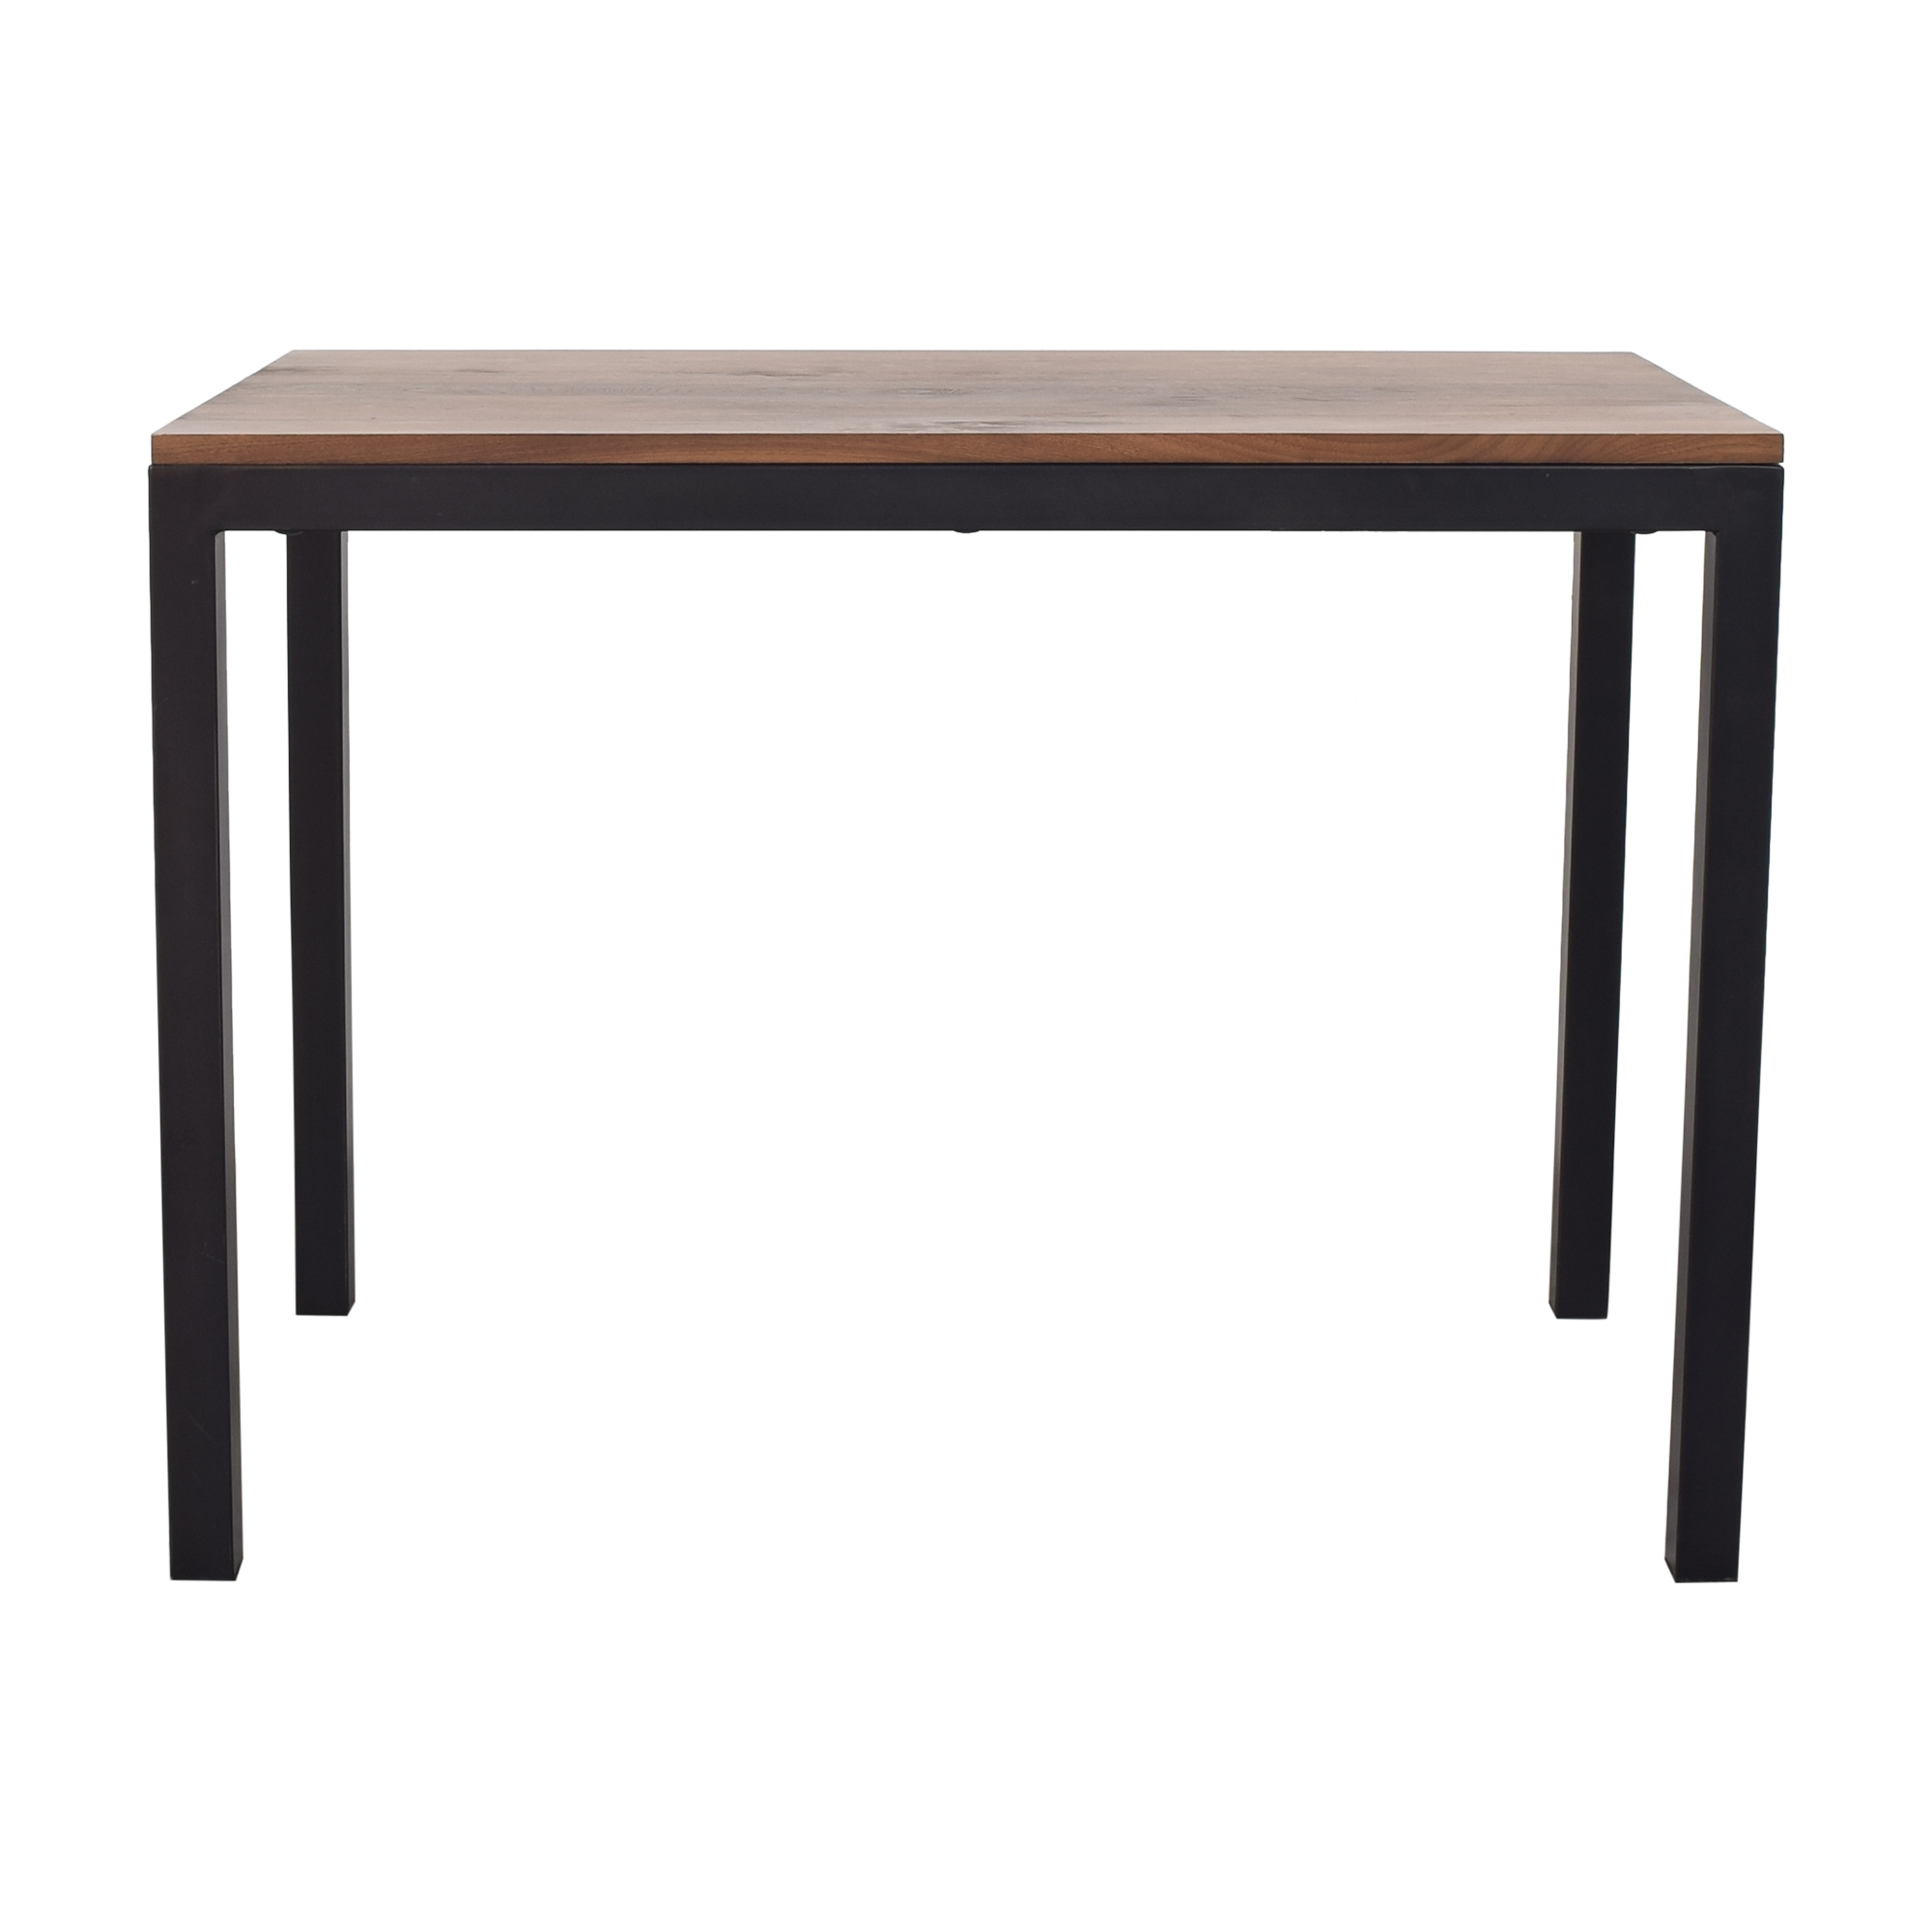 shop Crate & Barrel Crate & Barrel Custom Parsons Table online